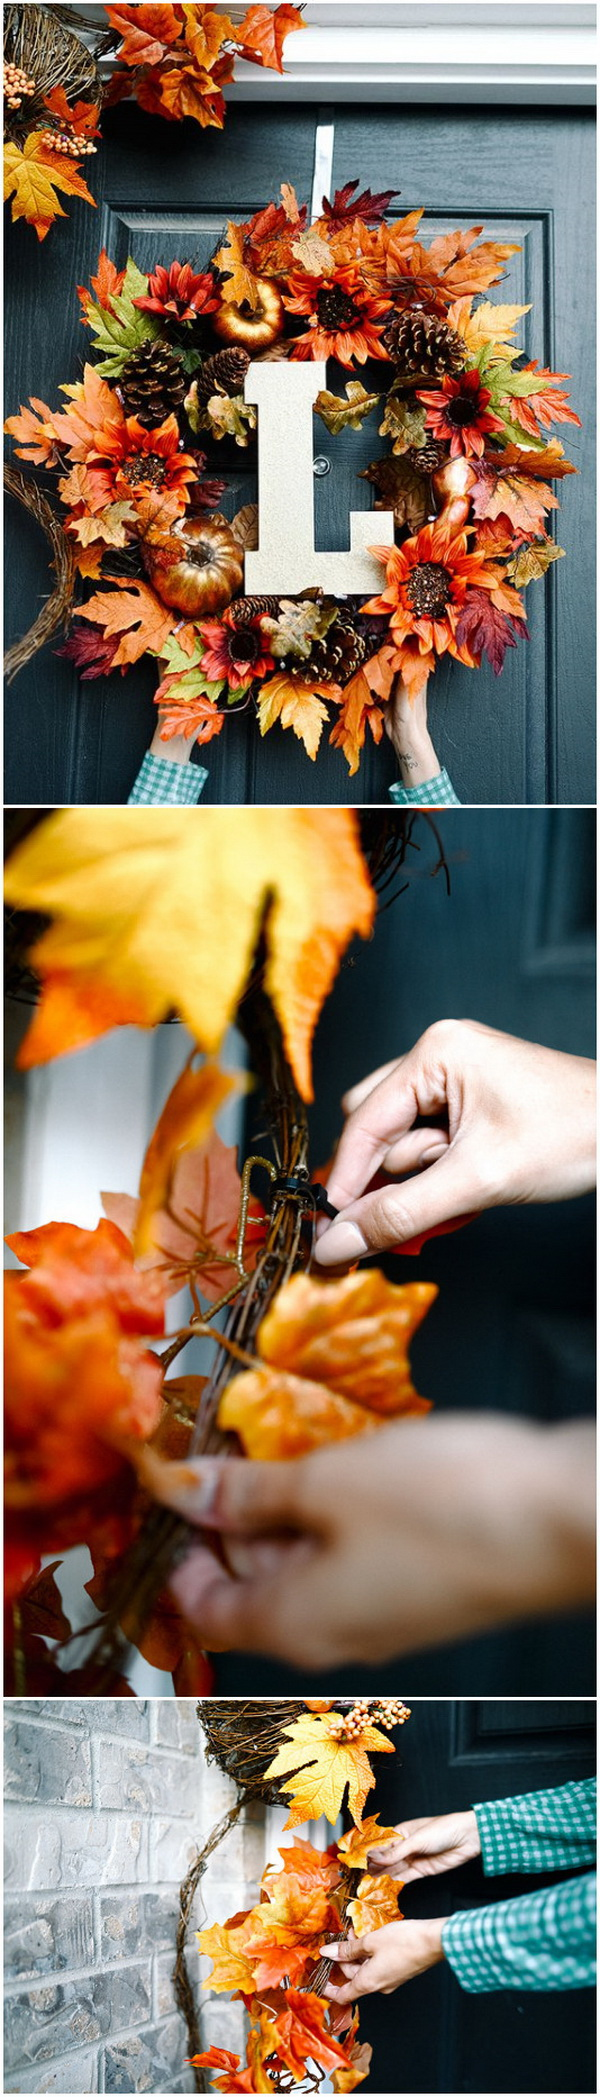 50 Diy Fall Crafts Decoration Ideas That Are Easy And Inexpensive For Creative Juice